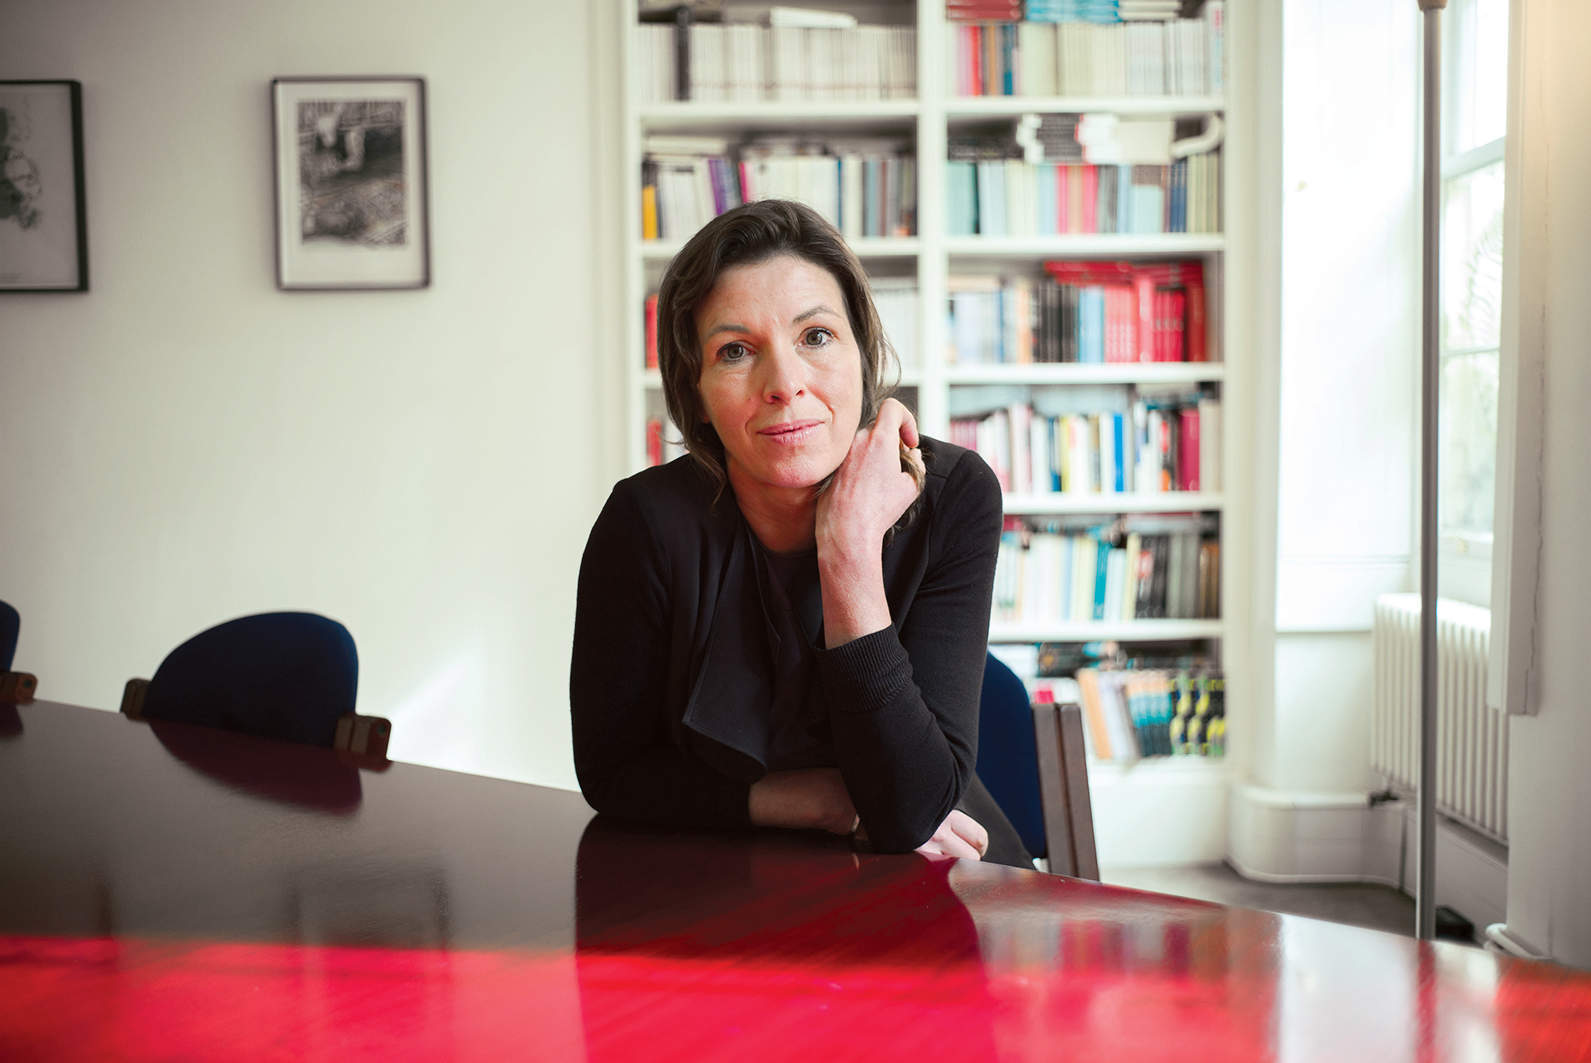 Stuck to the formula: Rachel Cusk's Transit hits a new dead end